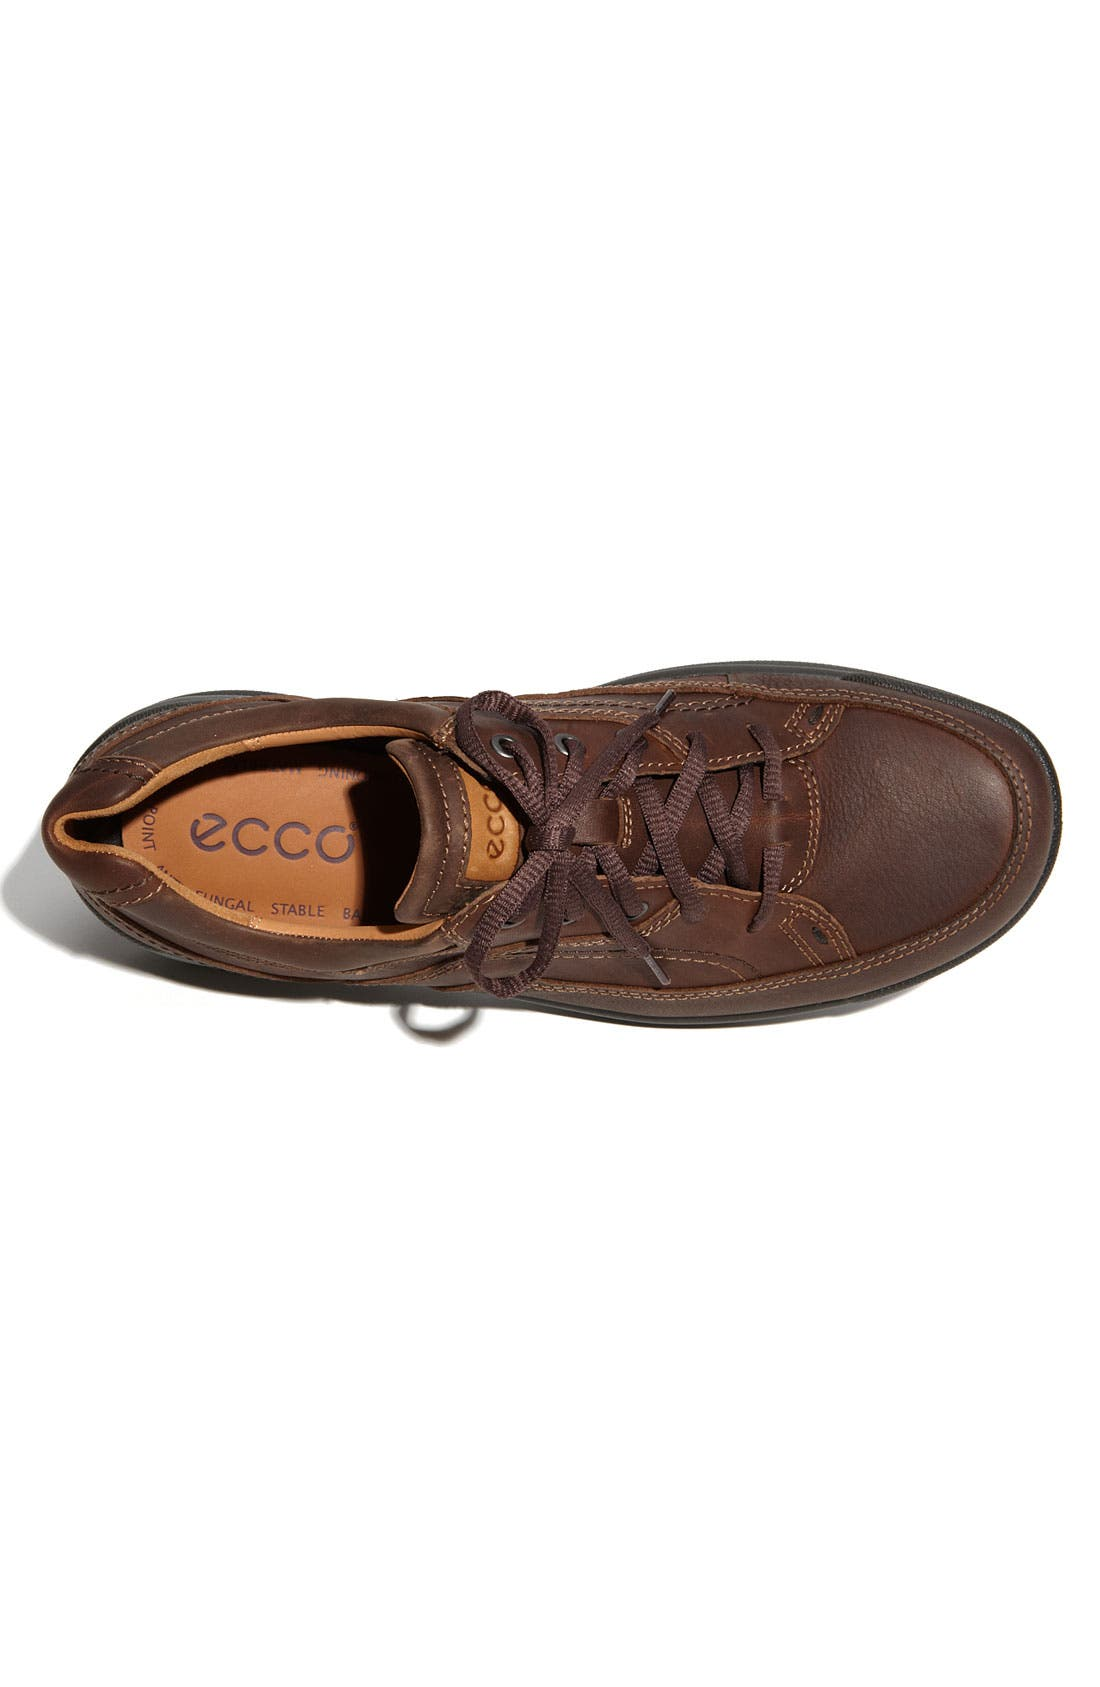 Alternate Image 3  - ECCO 'Remote' Lace-Up Oxford